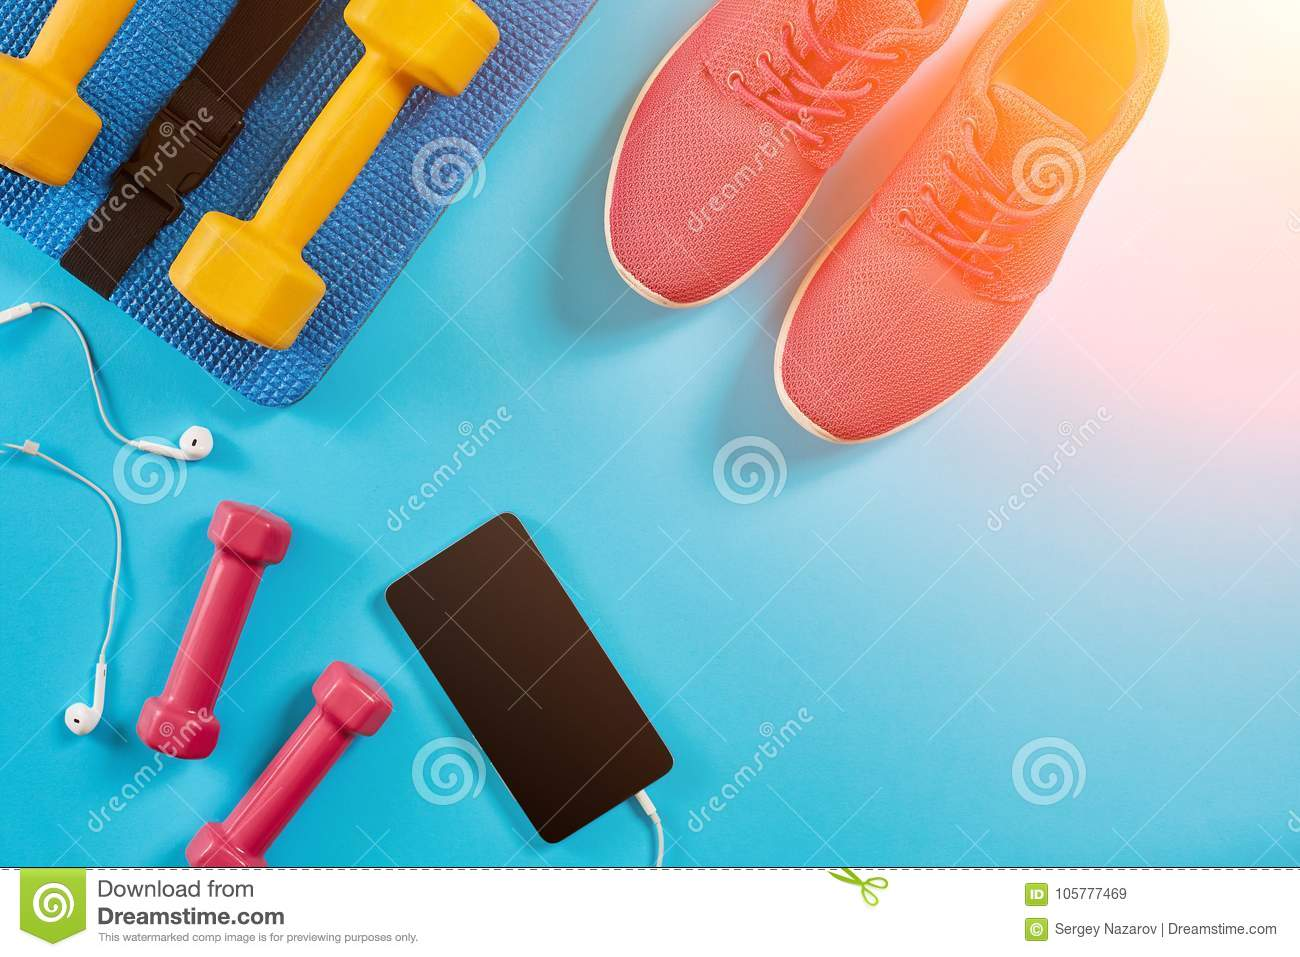 Sport shoes, dumbbells and mobile phone on blue background. Top view. Fitness, sport and healthy lifestyle concept. Sun